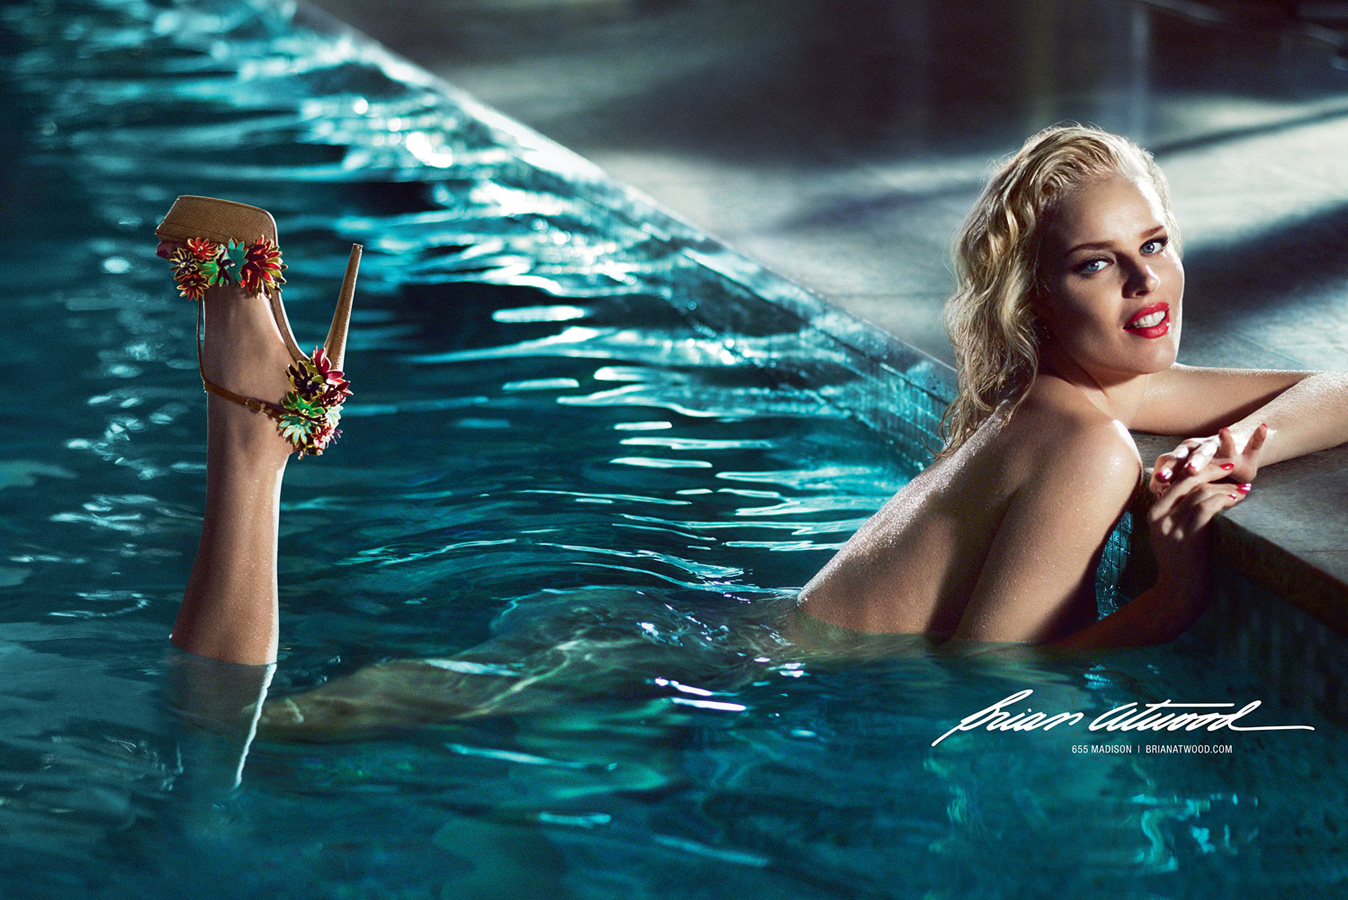 Recent history's most controversial ads